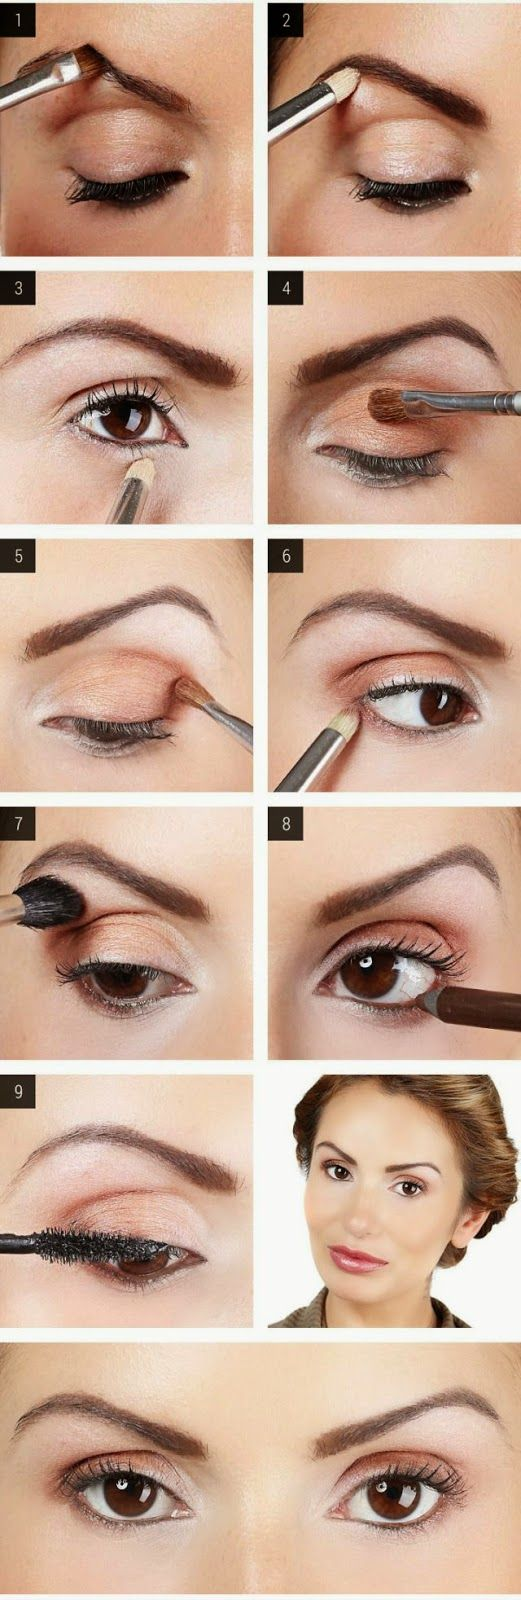 Cejas Cuadradas Makeup How-to: Ethereal Eyes | Eyelashes | Beauty Makeup